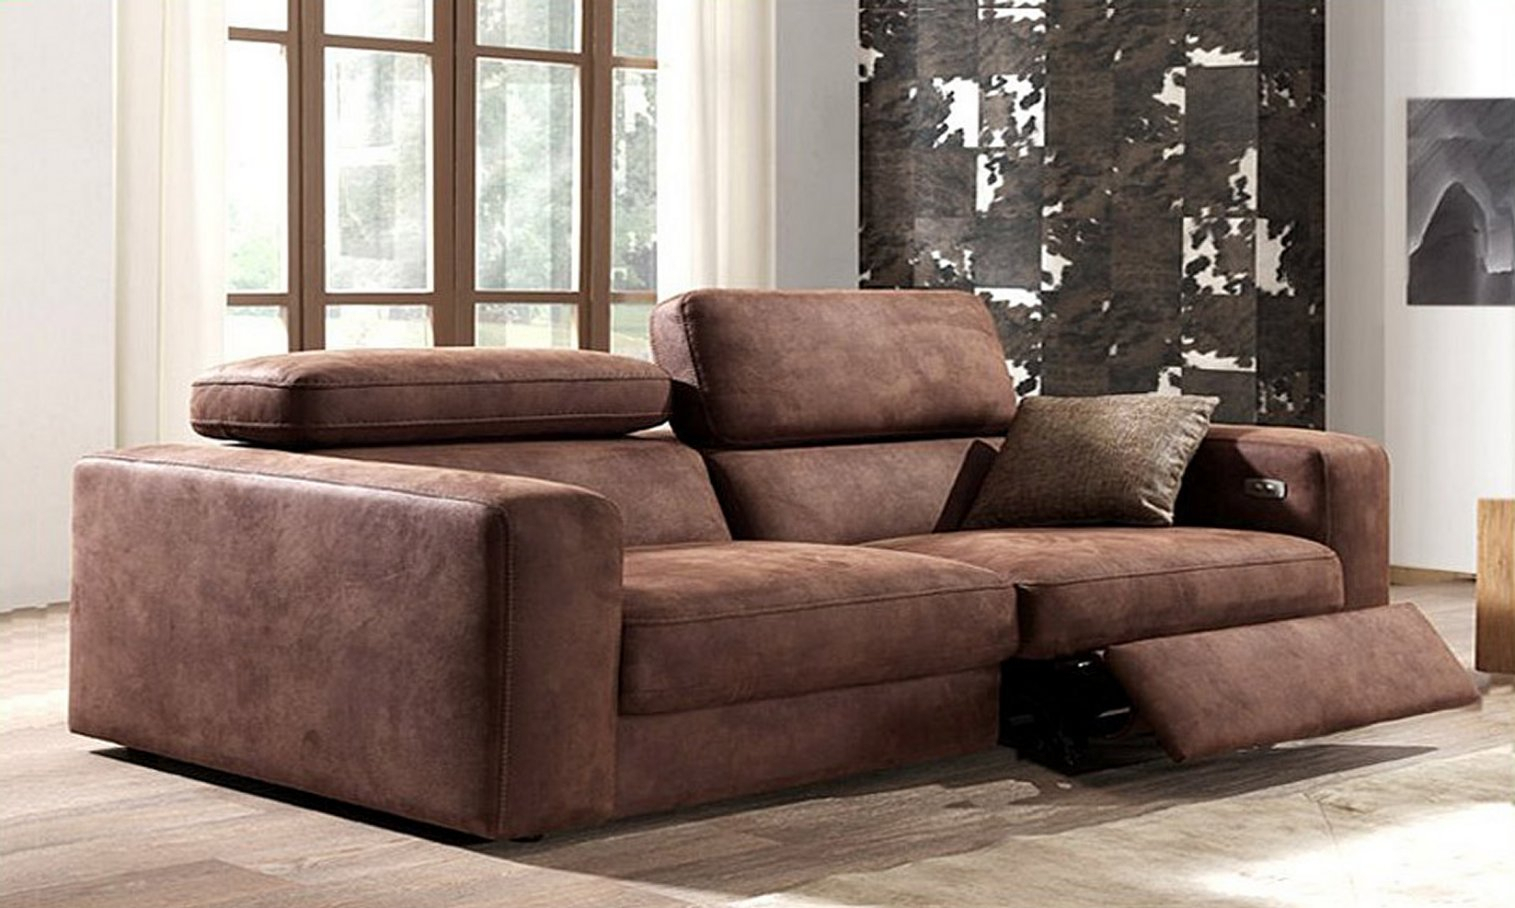 Italian Leather Sofa Country Relaxcalia Maddalena For Country Sofas And Chairs (View 1 of 15)